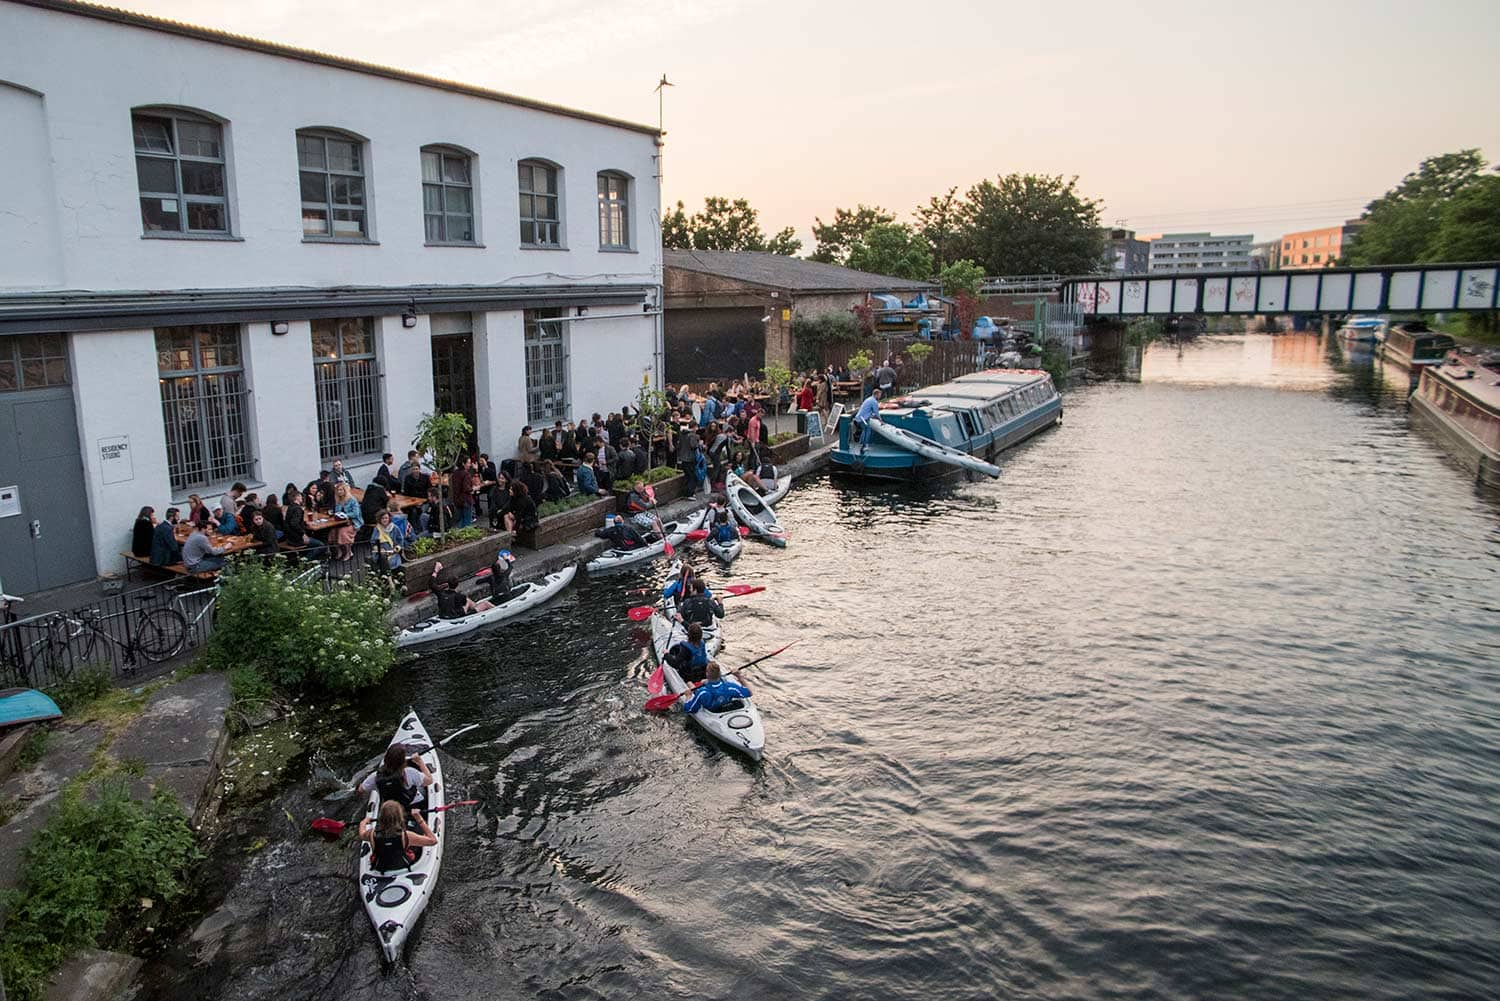 Kayak outdoor things to do london